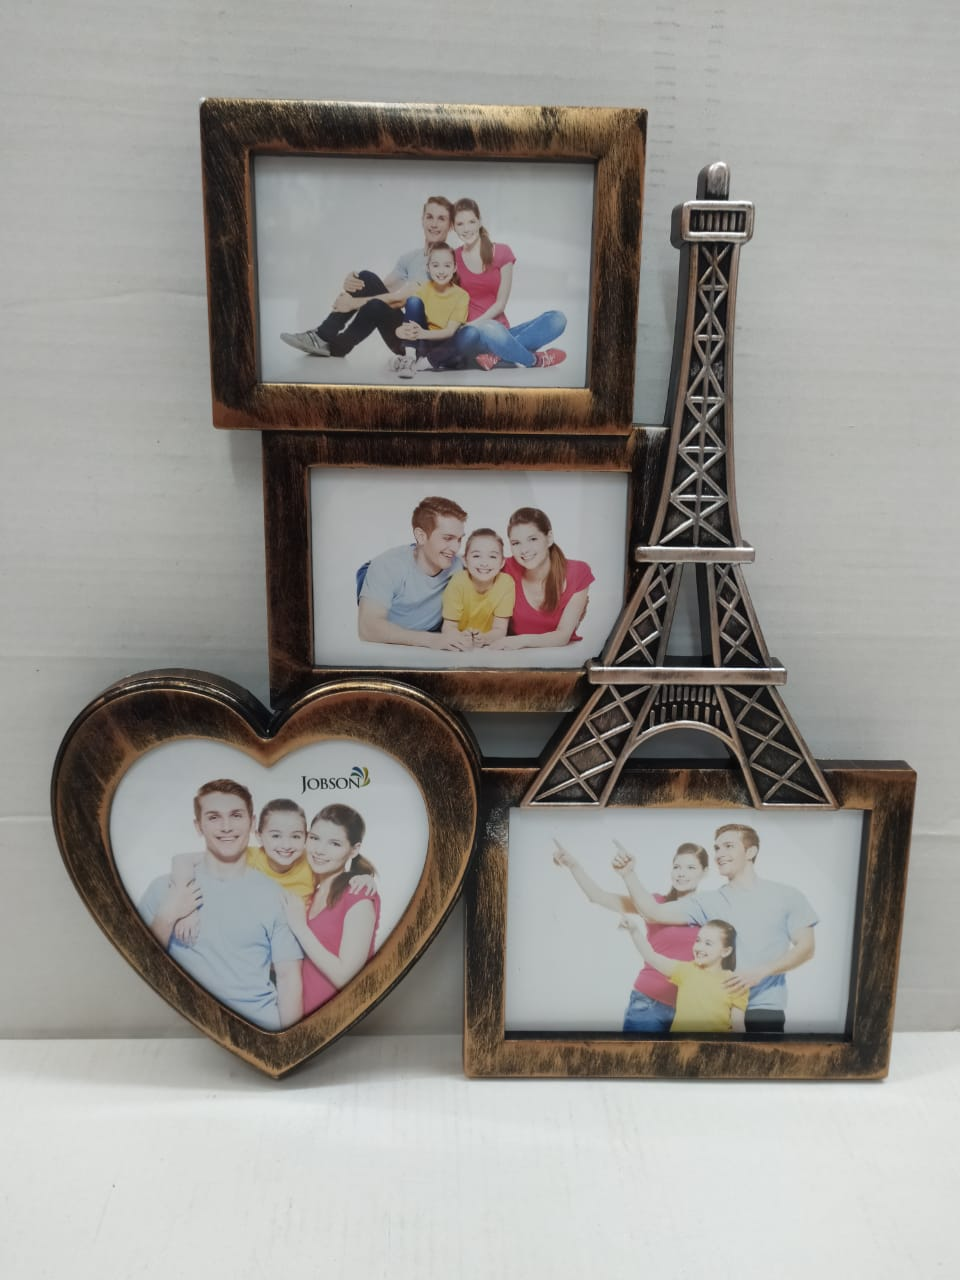 Buy Collage Photo Frame With Eiffel Tower Style (NY161)Online